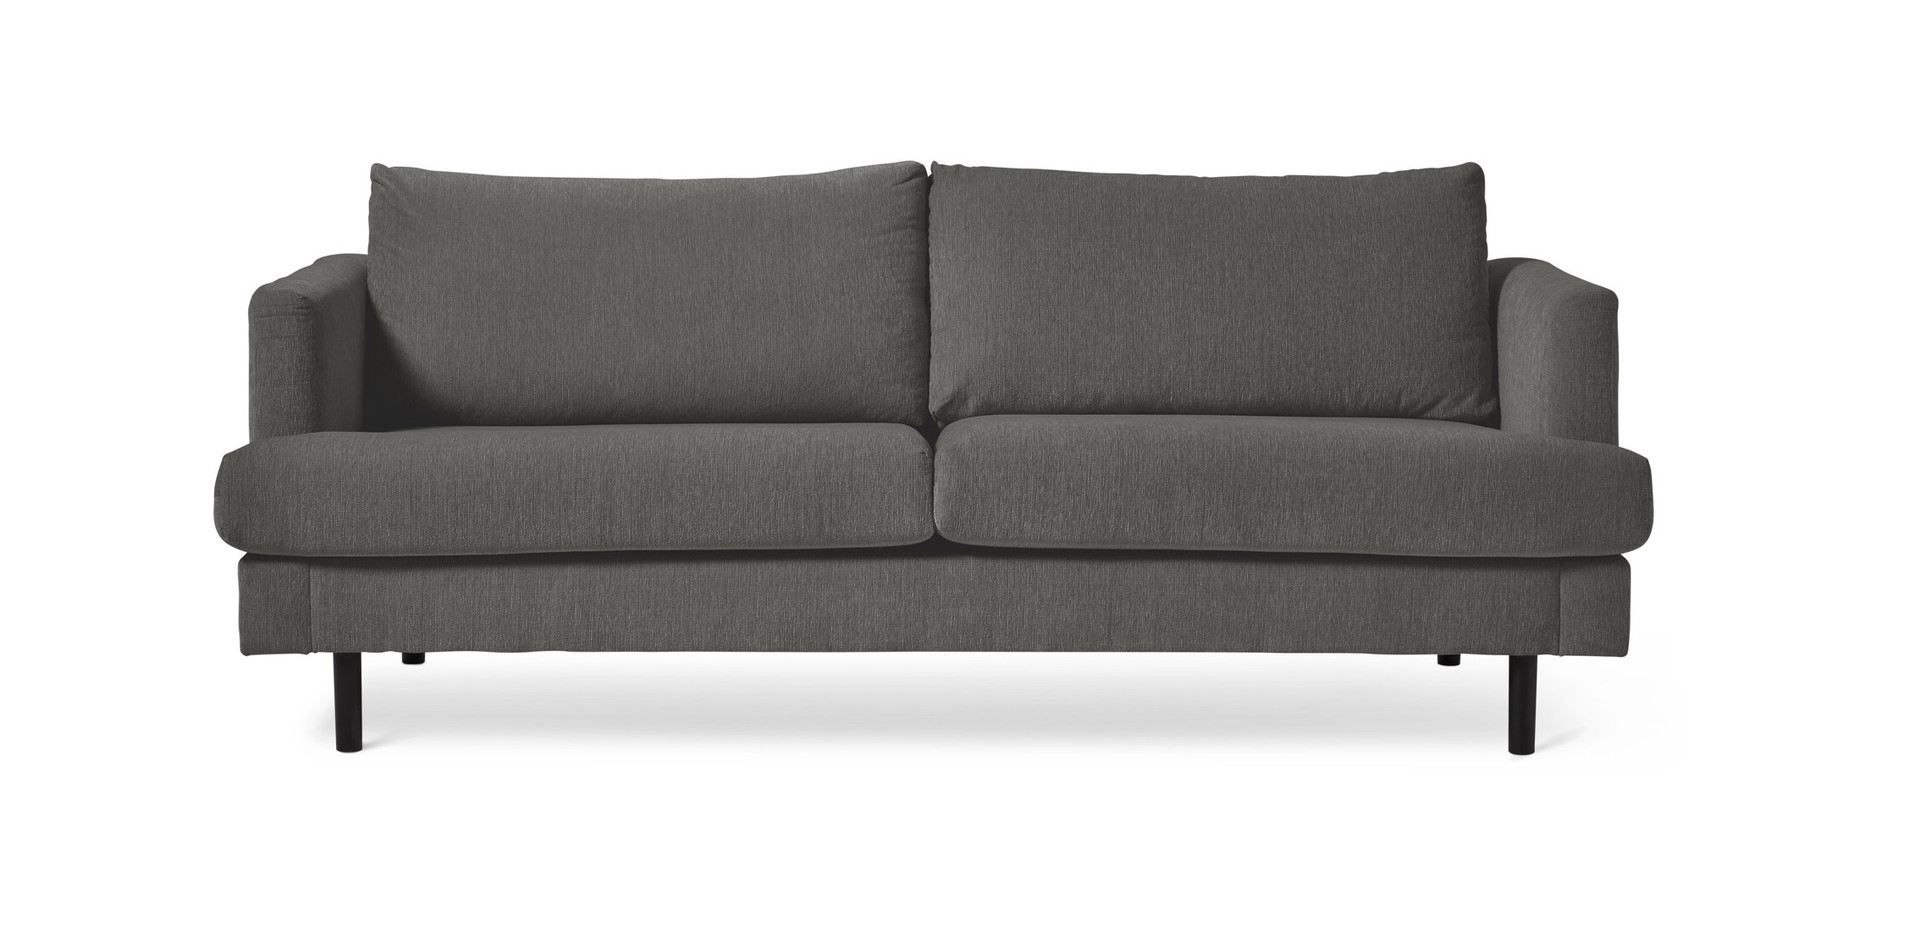 Maison 3so Nors grey